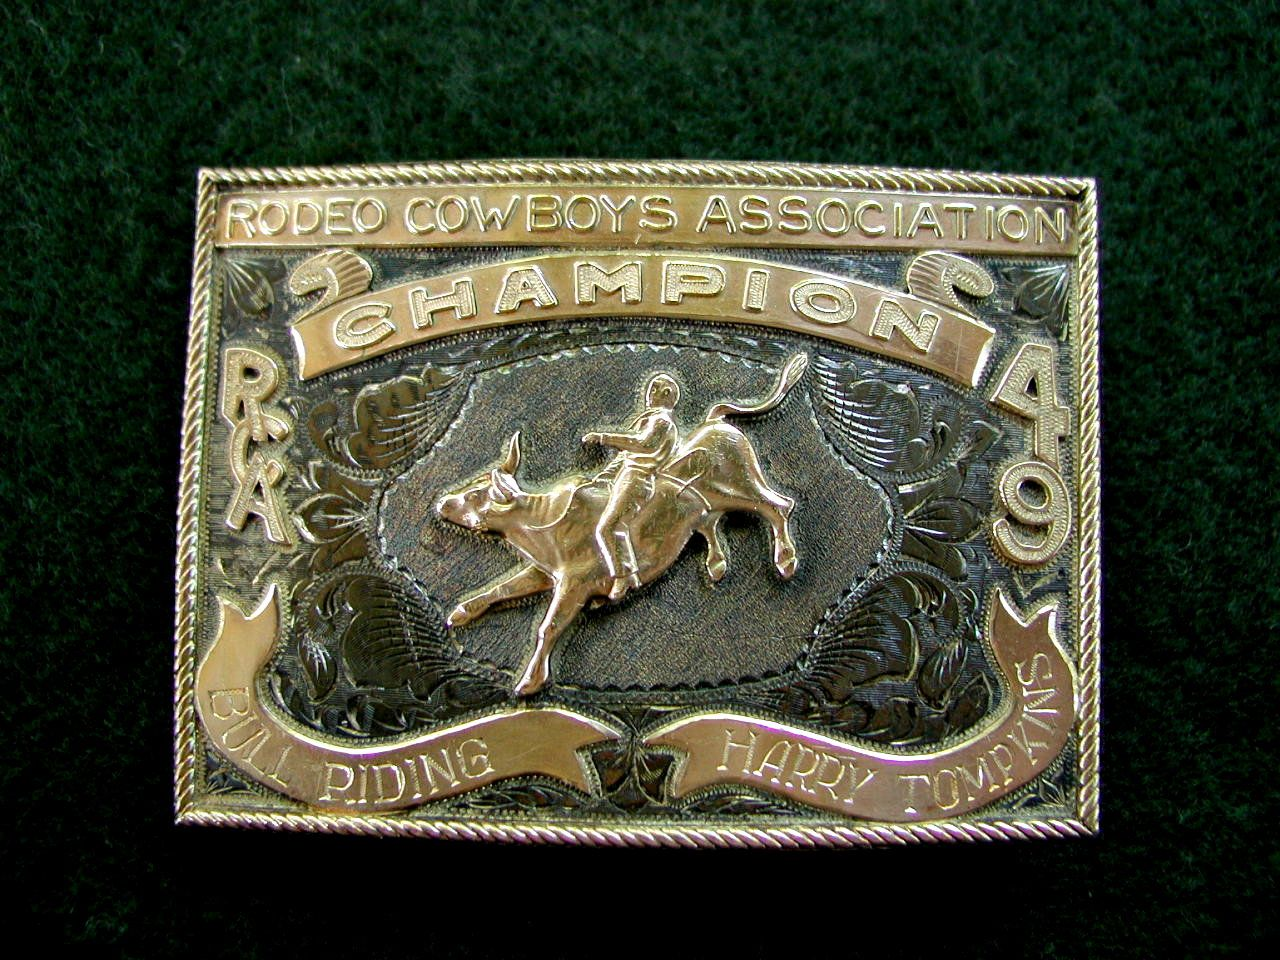 1949 Rca Champion Bull Rider Rodeo Trophy Buckles In